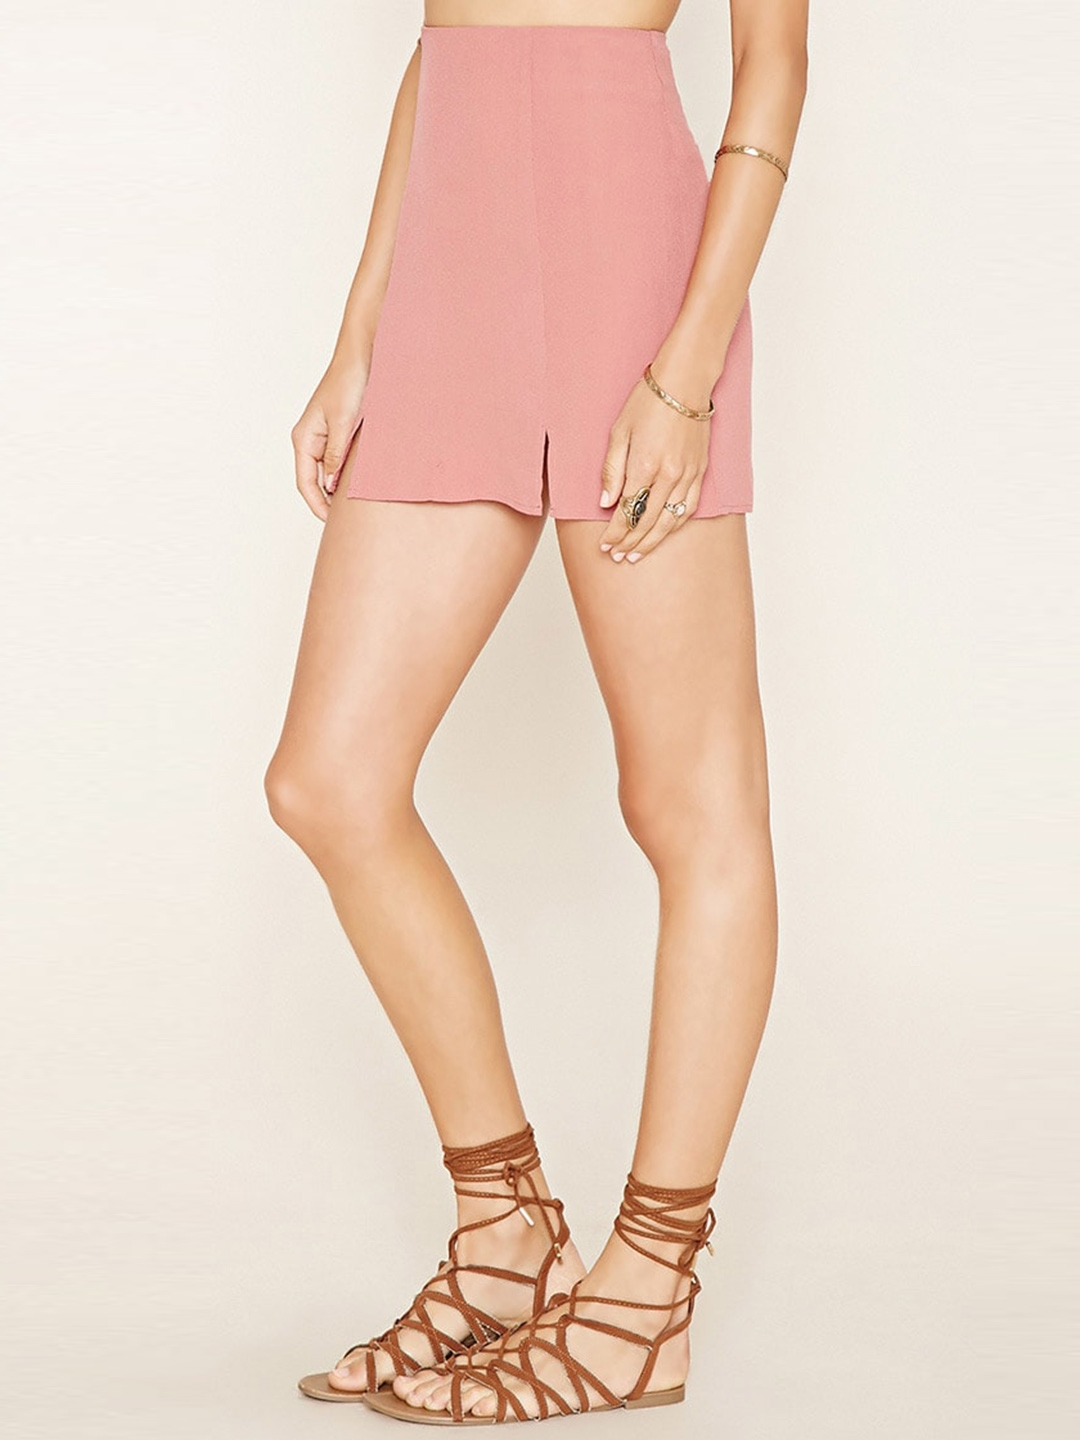 5e4a557b8 Buy FOREVER 21 Dusty Pink A Line Mini Skirt - Skirts for Women ...